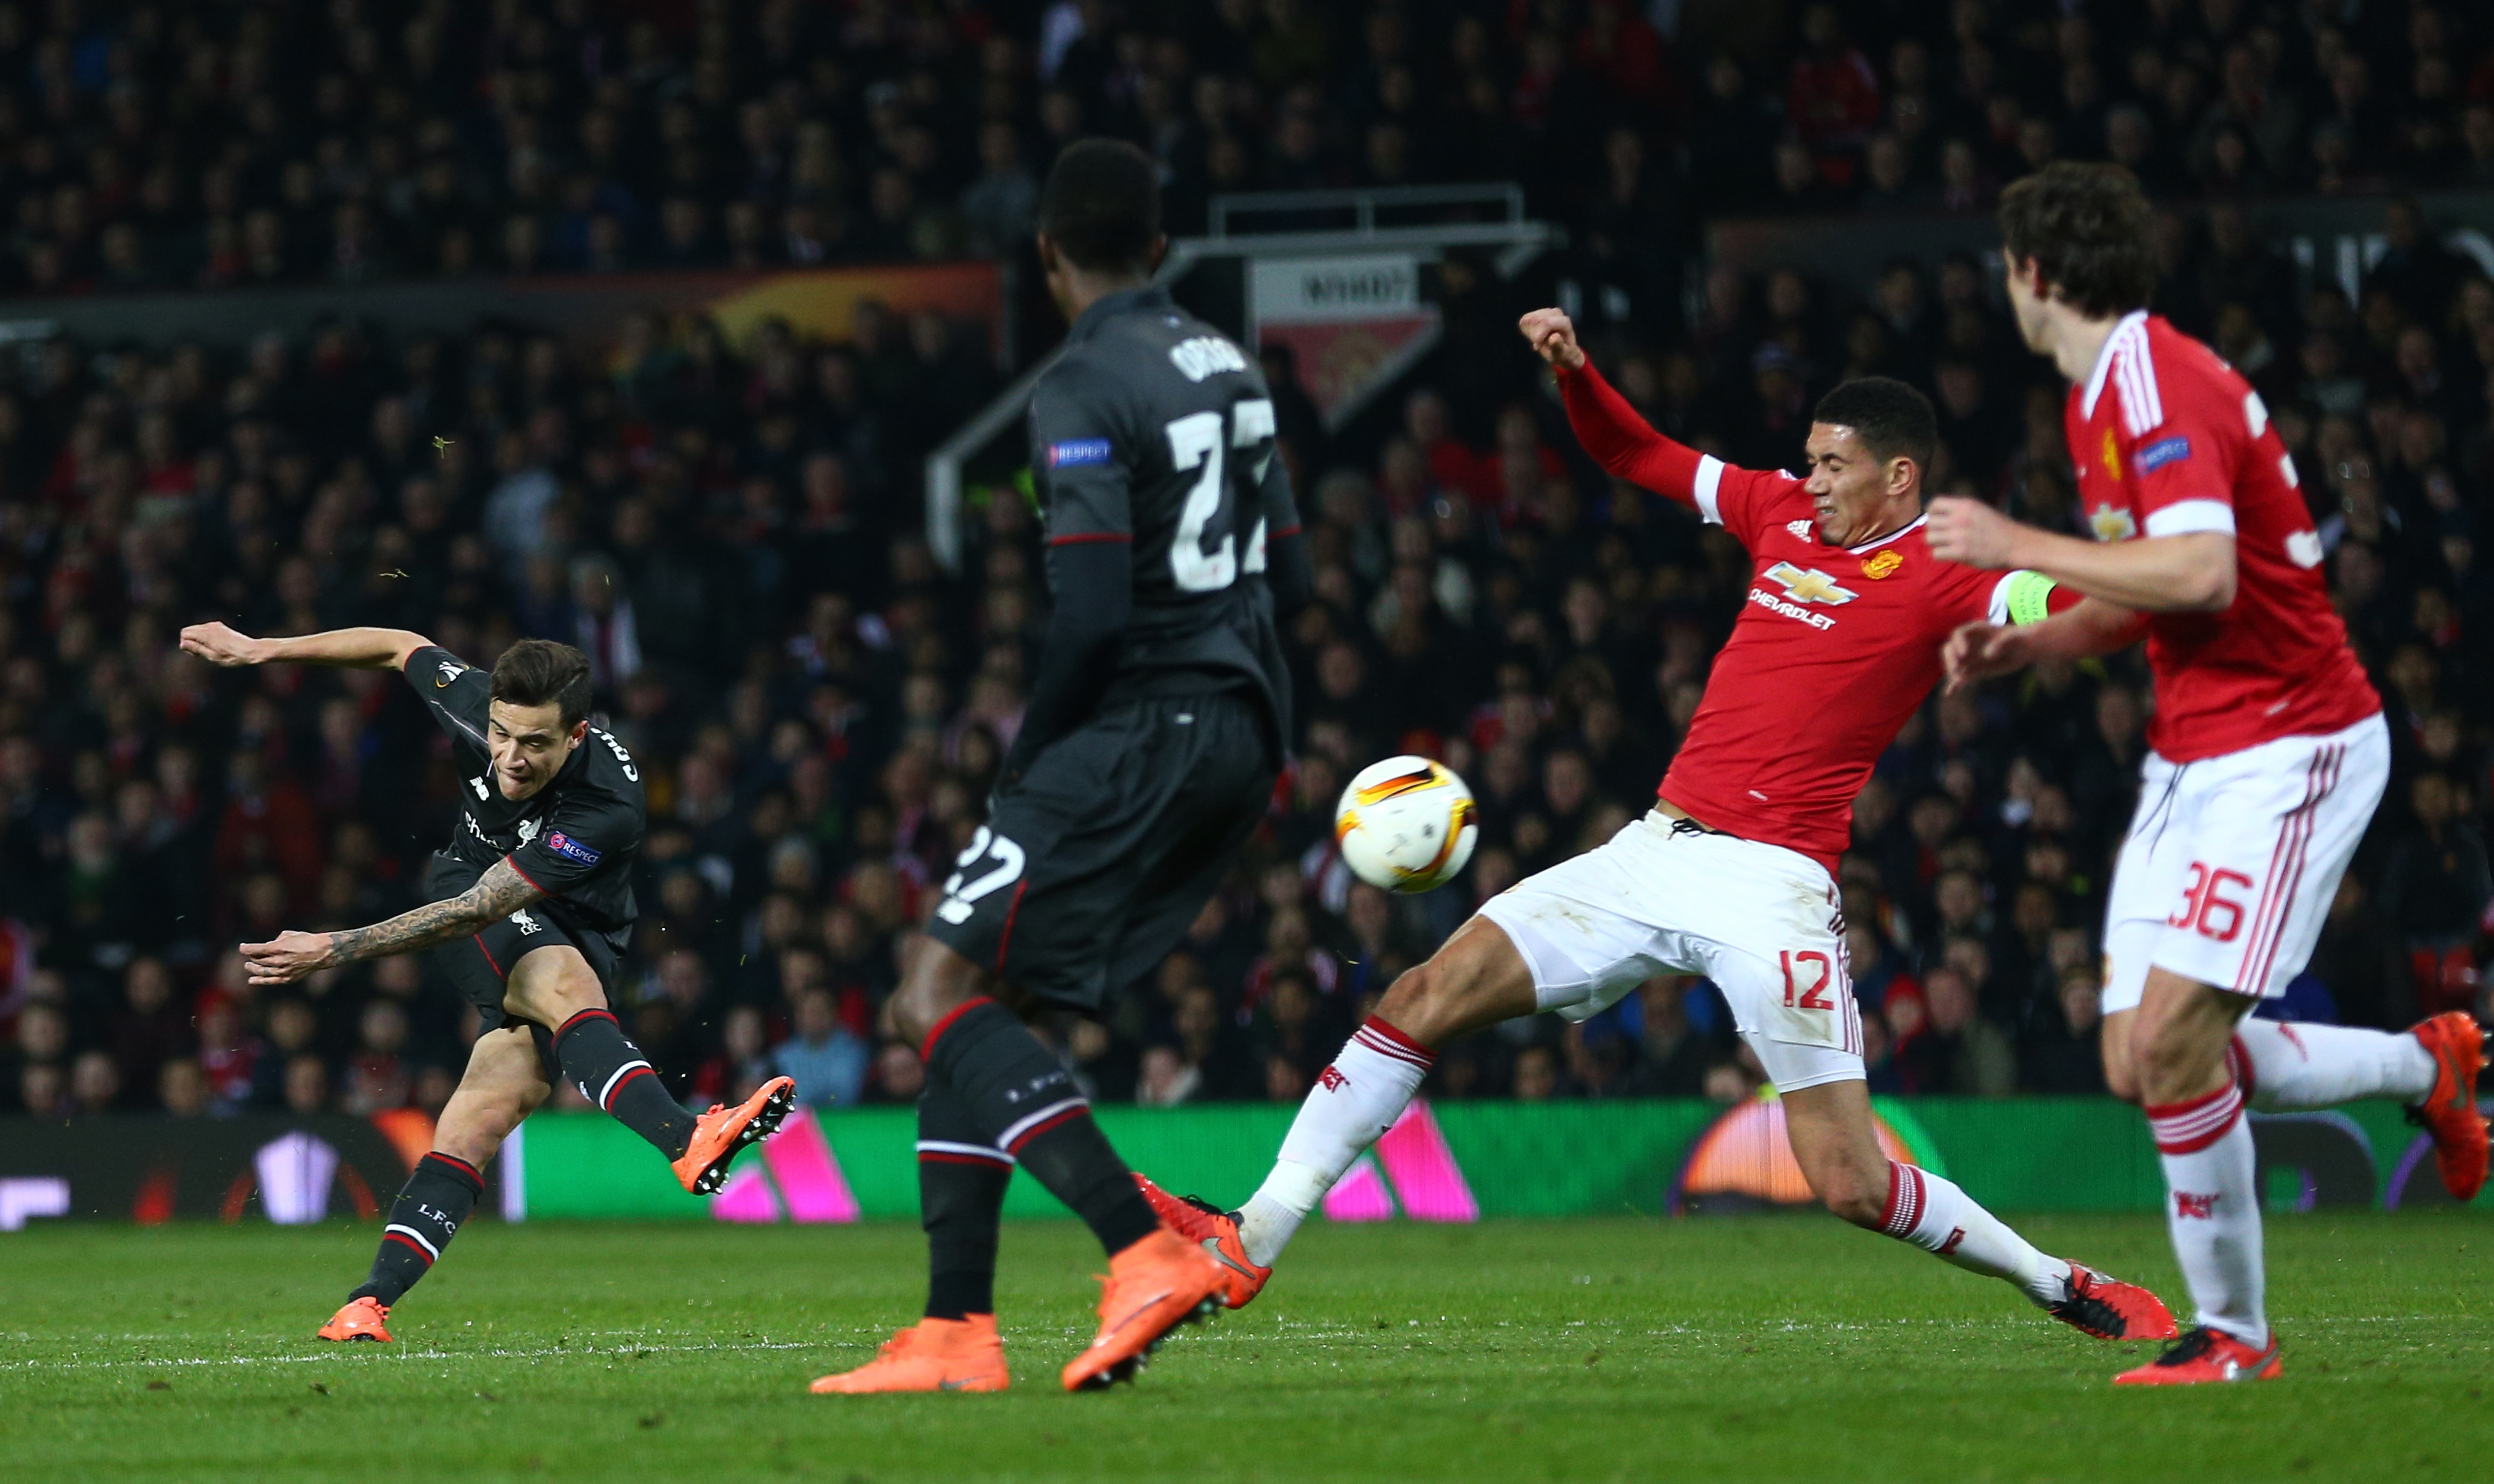 MANCHESTER, ENGLAND - MARCH 17: Philippe Coutinho of Liverpool shoots at goal during the UEFA Europa League round of 16, second leg match between Manchester United and Liverpool at Old Trafford on March 17, 2016 in Manchester, England. (Photo by Clive Brunskill/Getty Images)